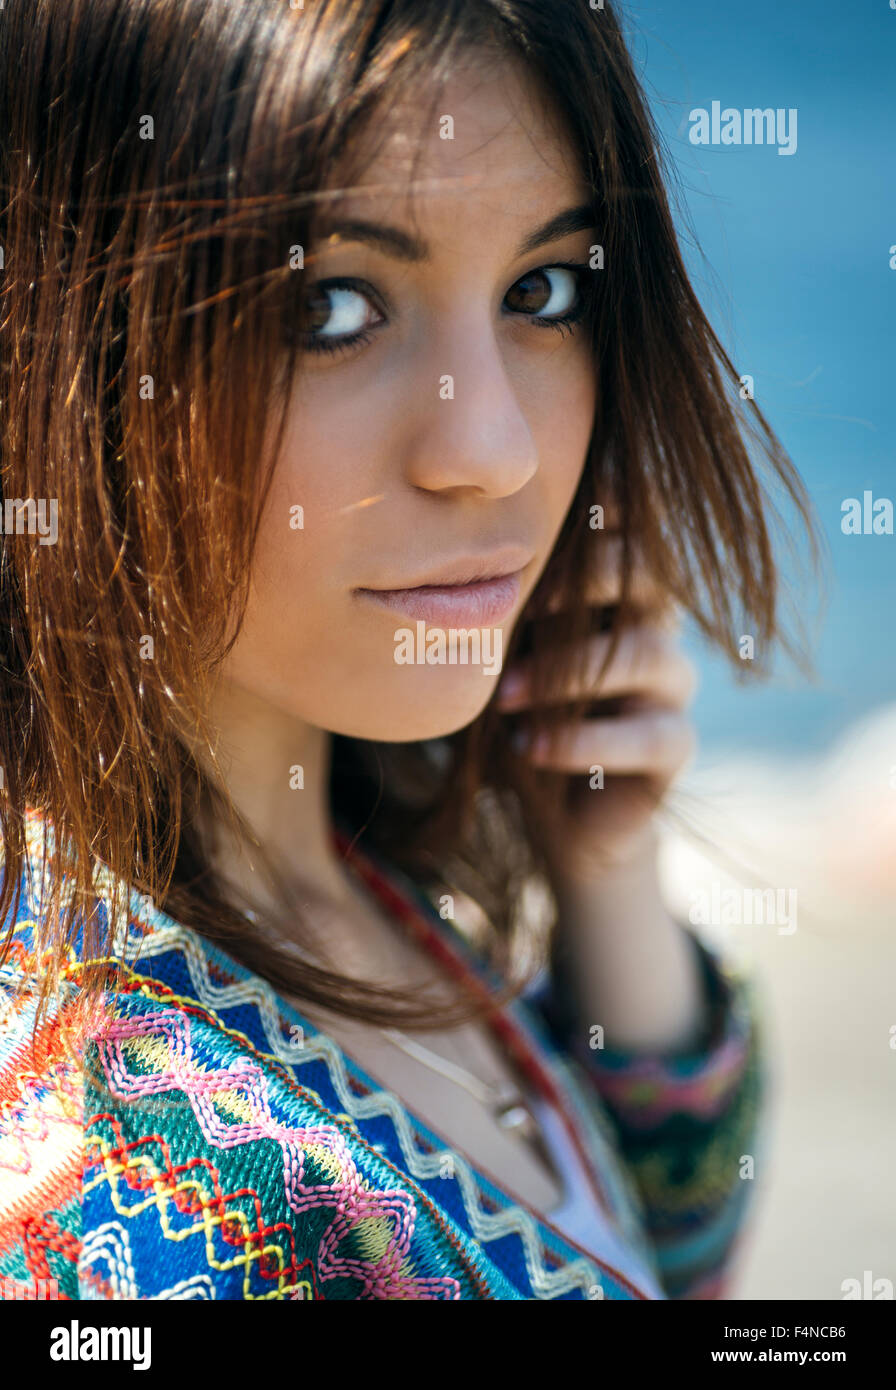 Portrait of young woman with brown hair and brown eyes - Stock Image